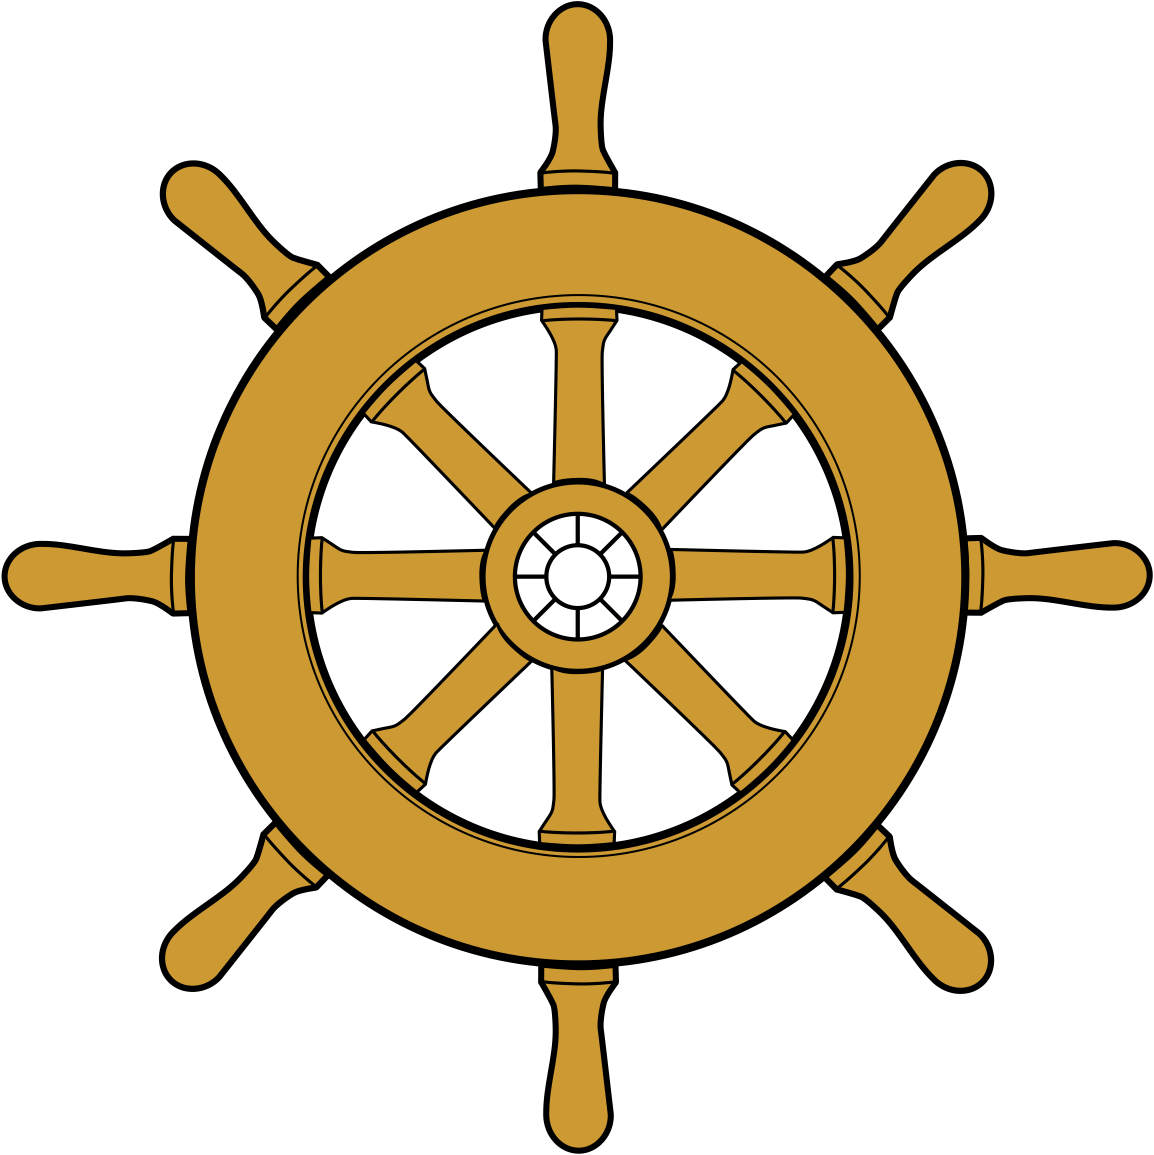 Sailor Wheel Clipart - Clipart Kid